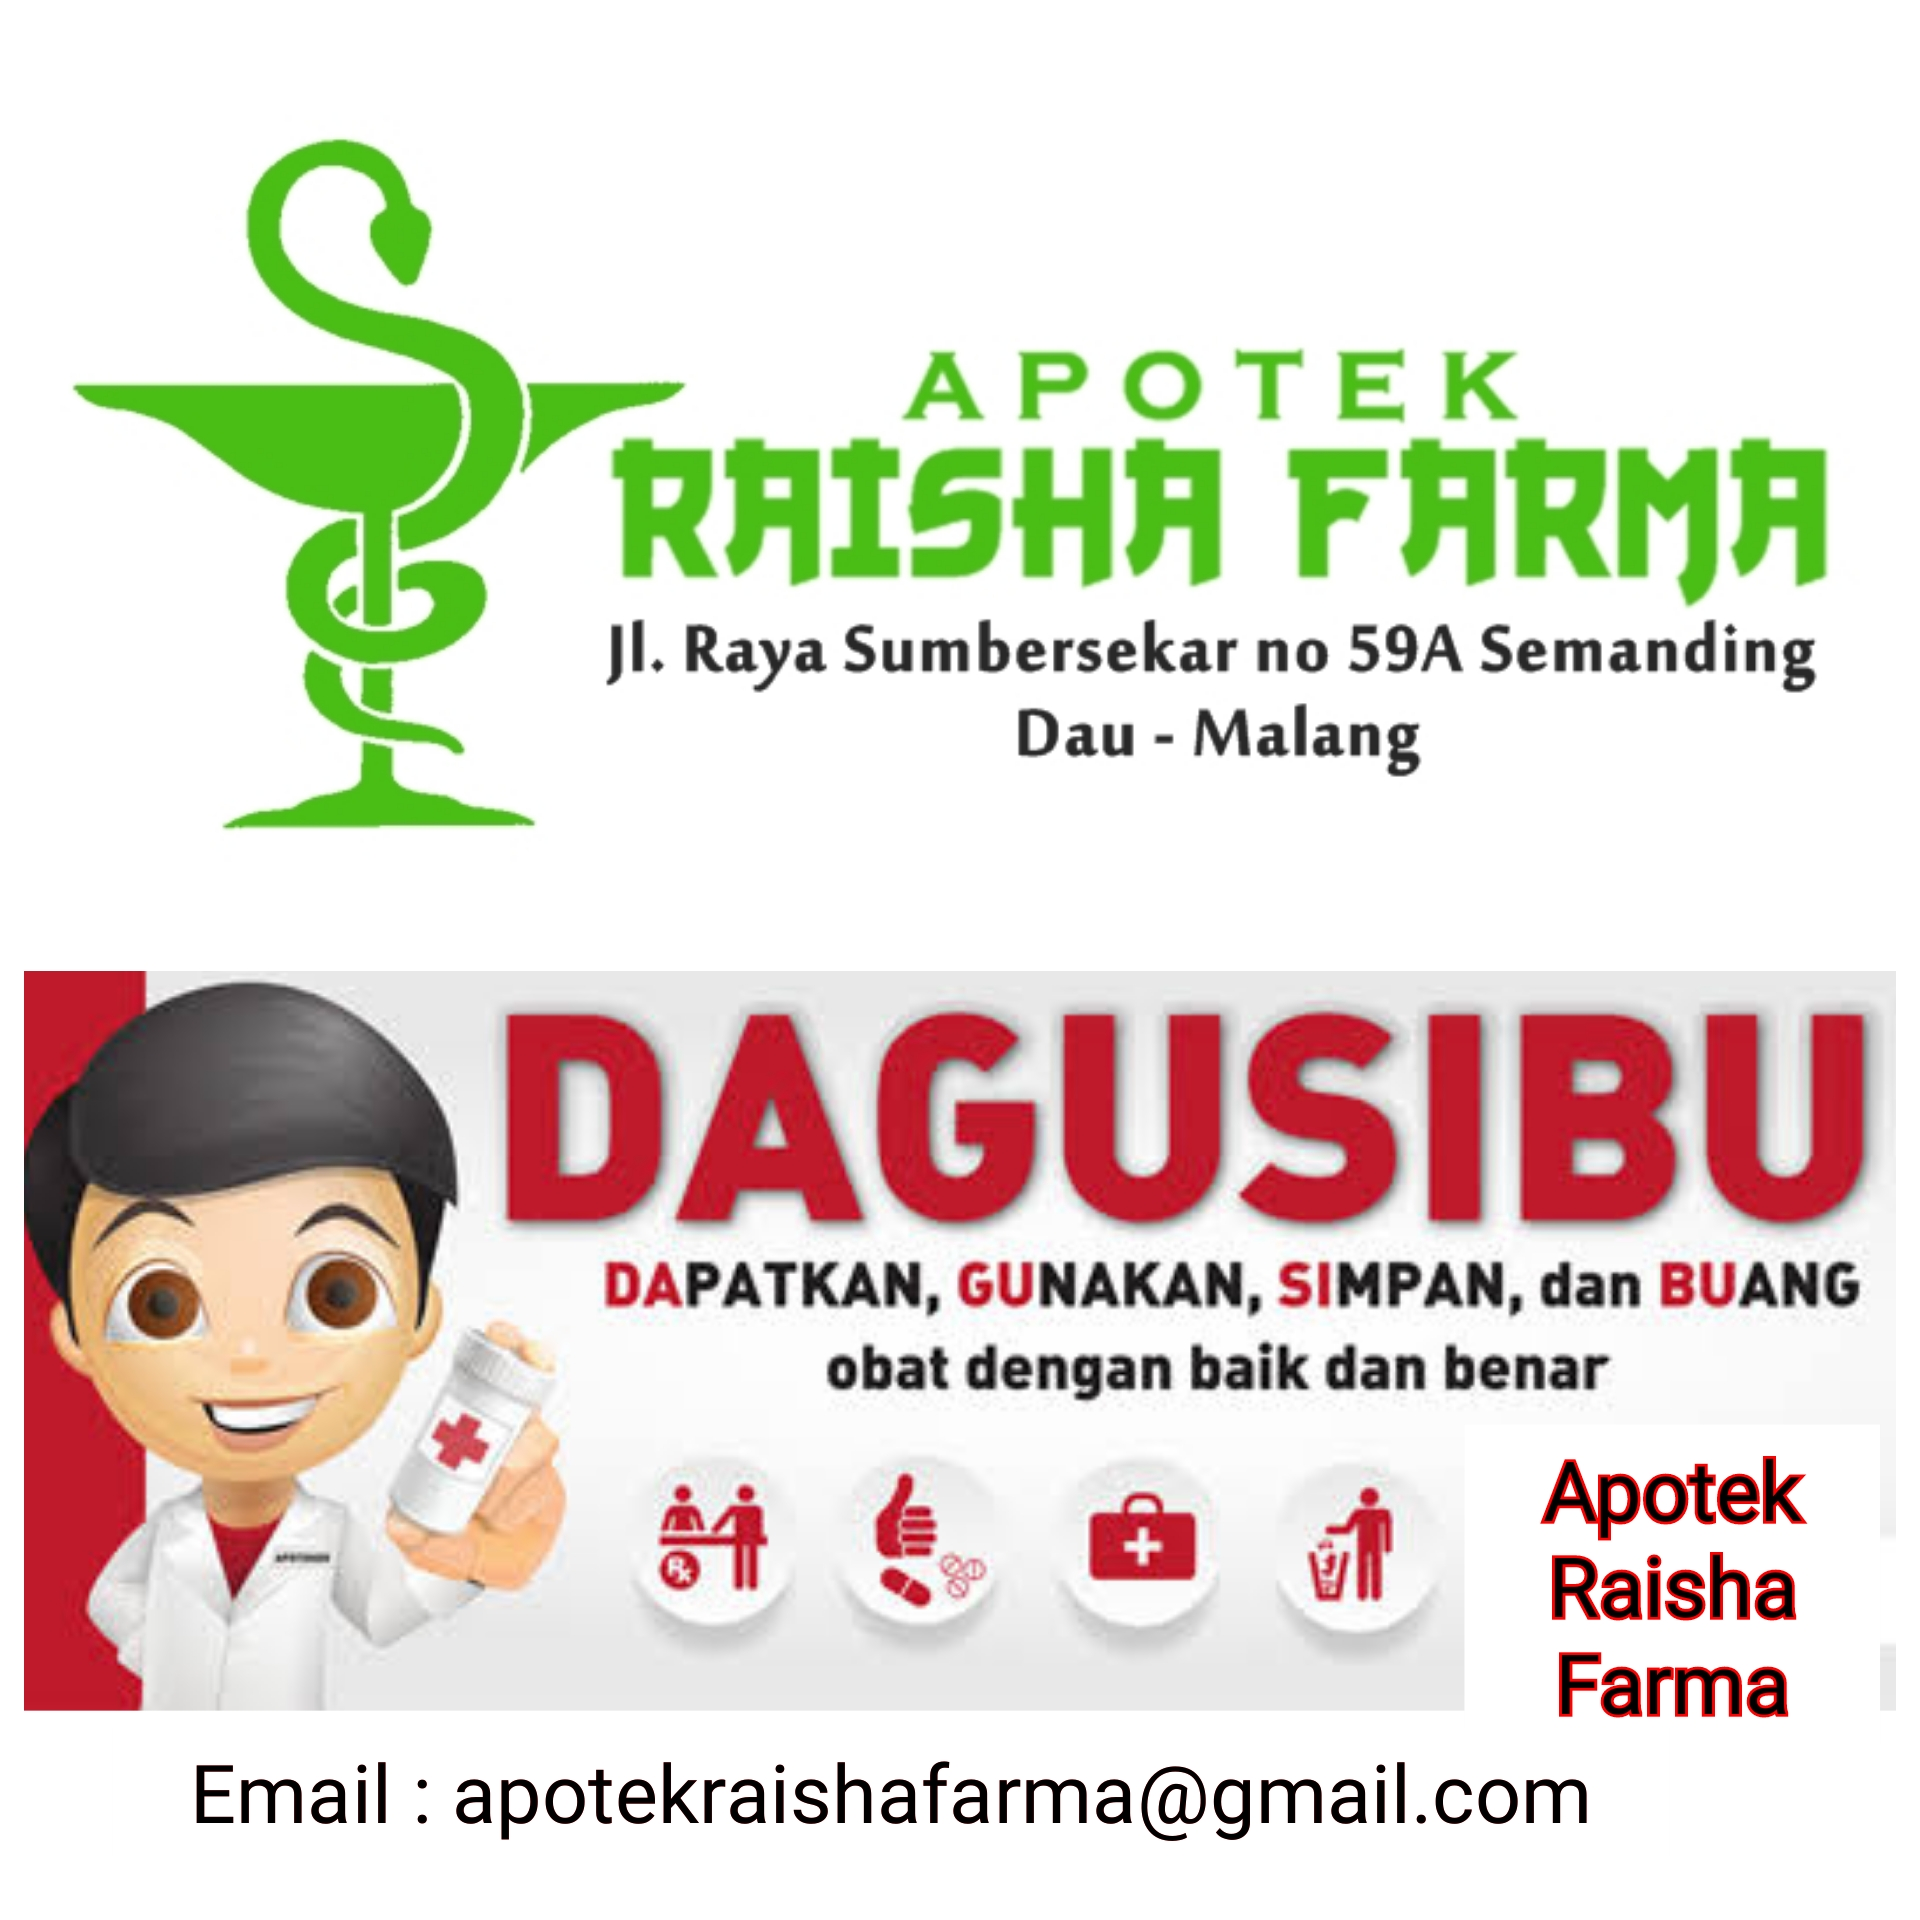 Apotek Raisha Farma